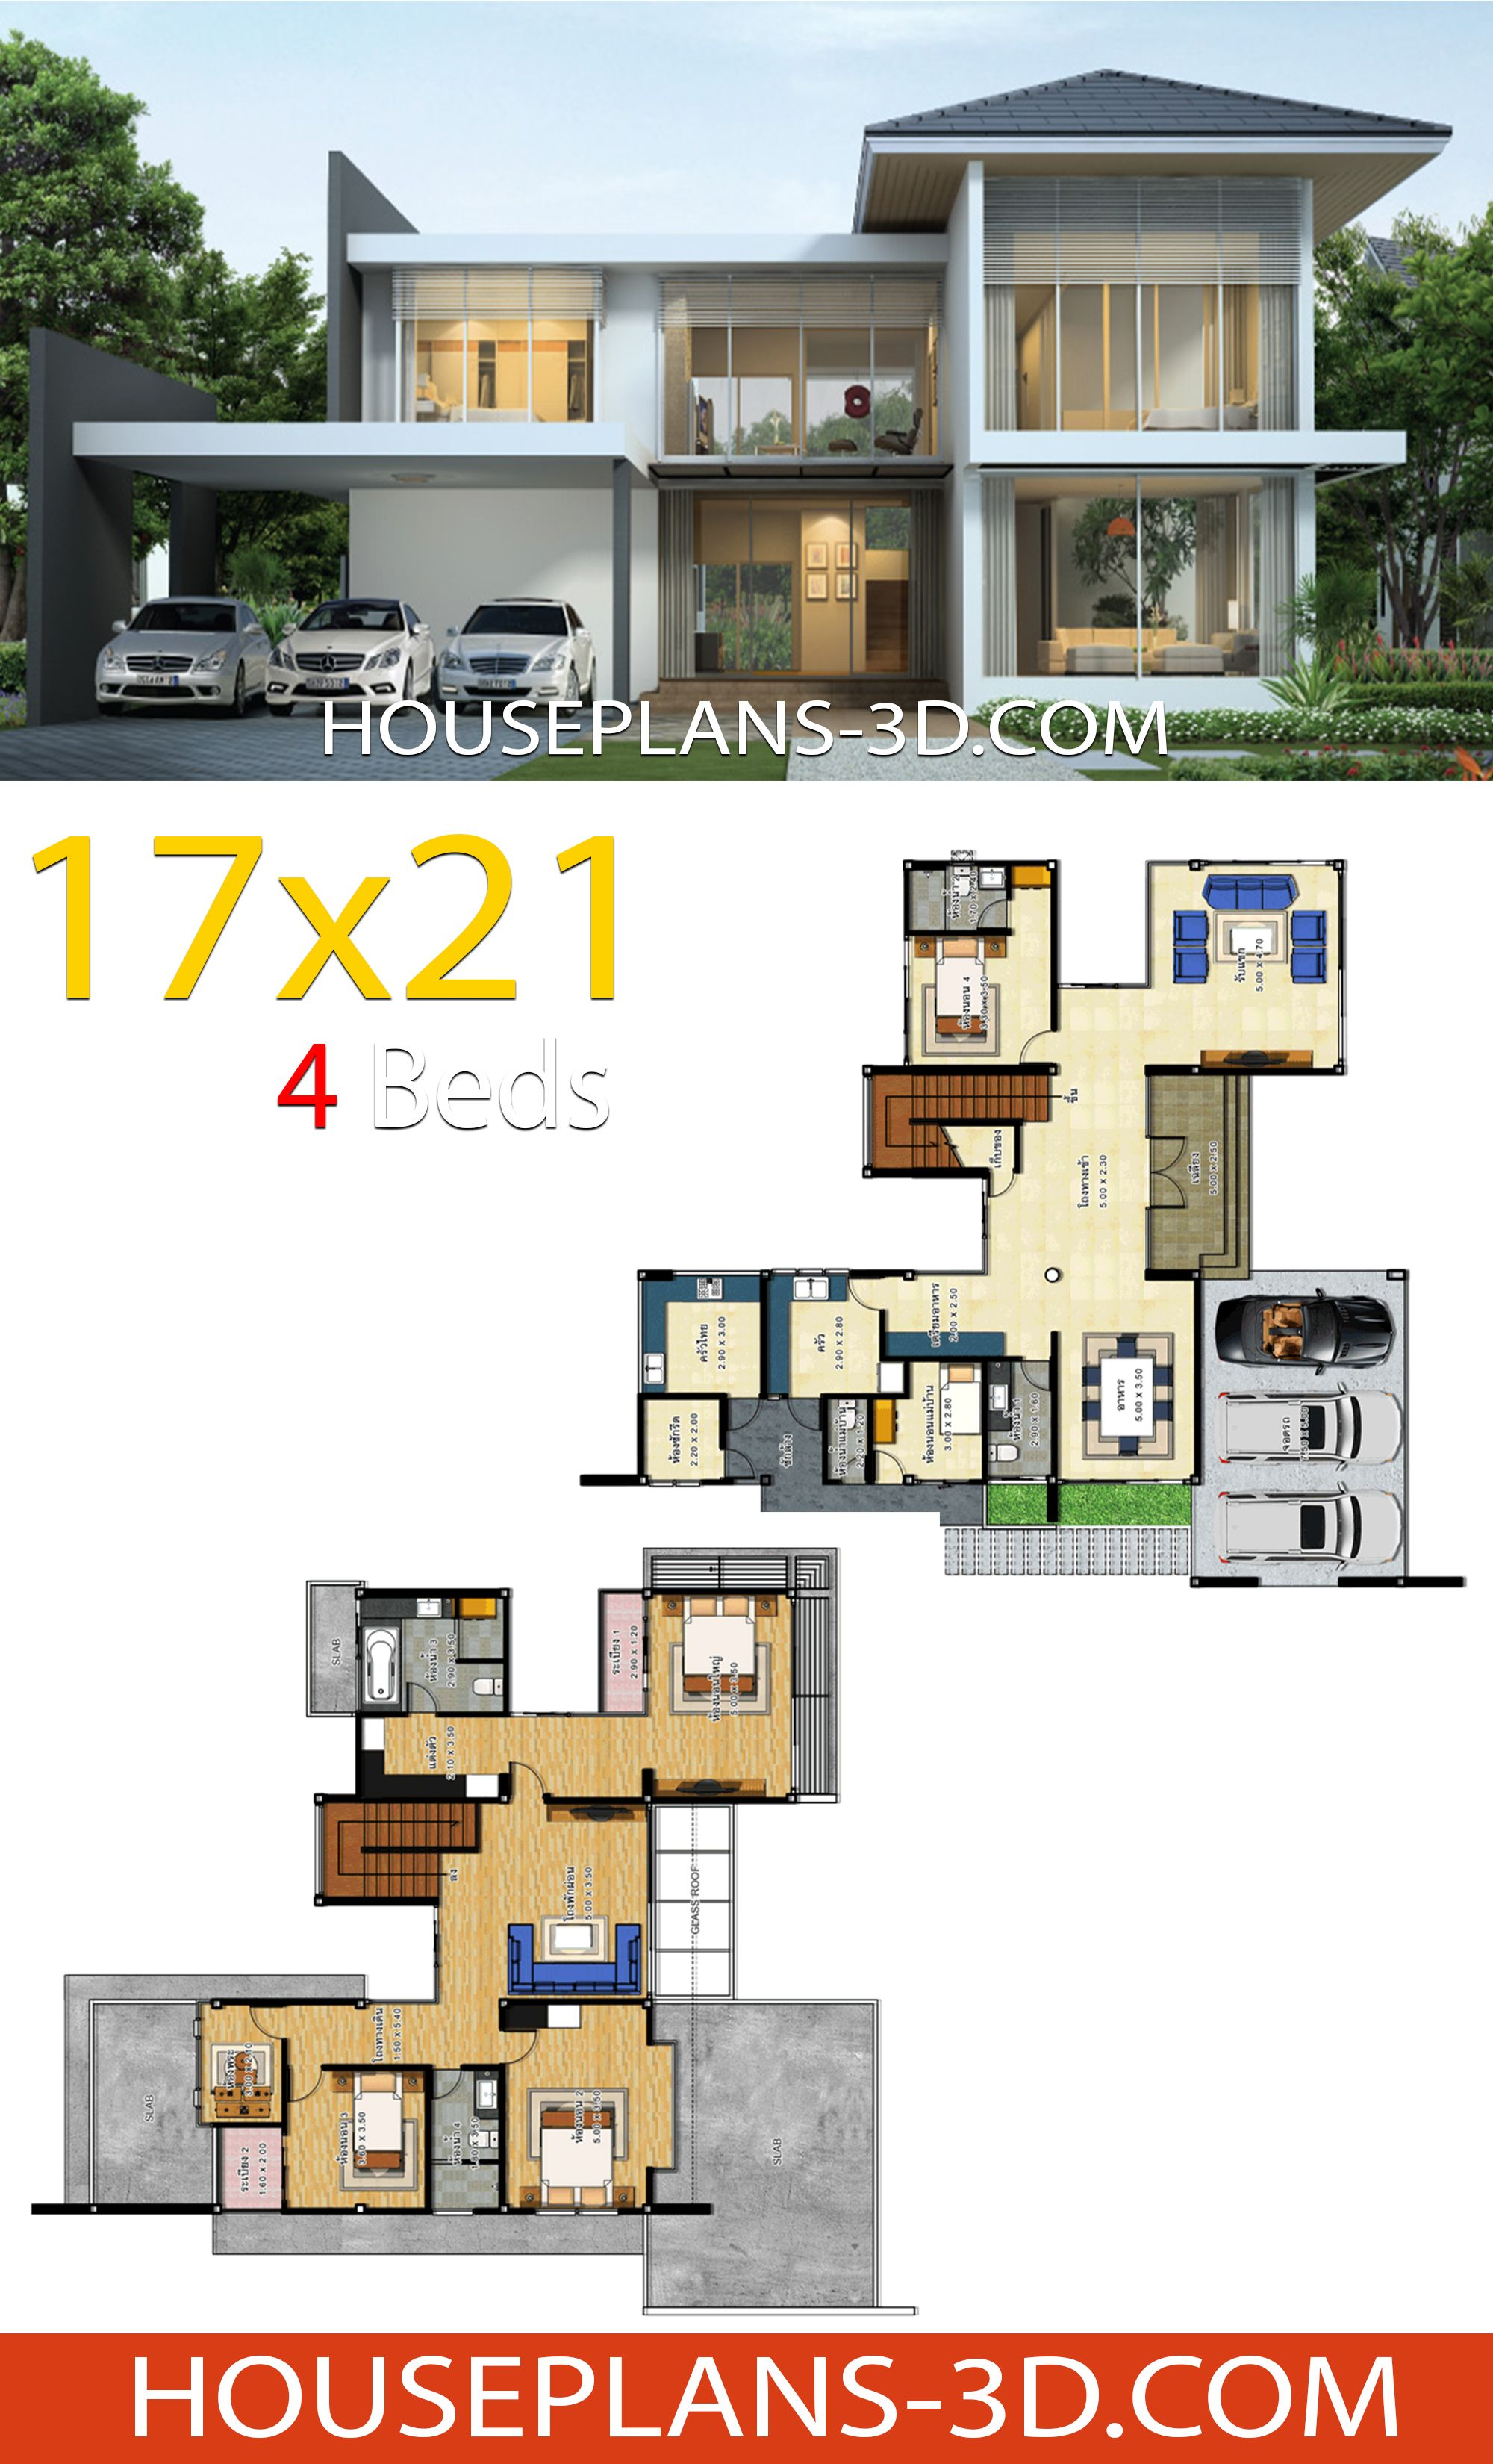 House Design 17x21 With 4 Bedrooms House Plans 3d House Plans Model House Plan House Design